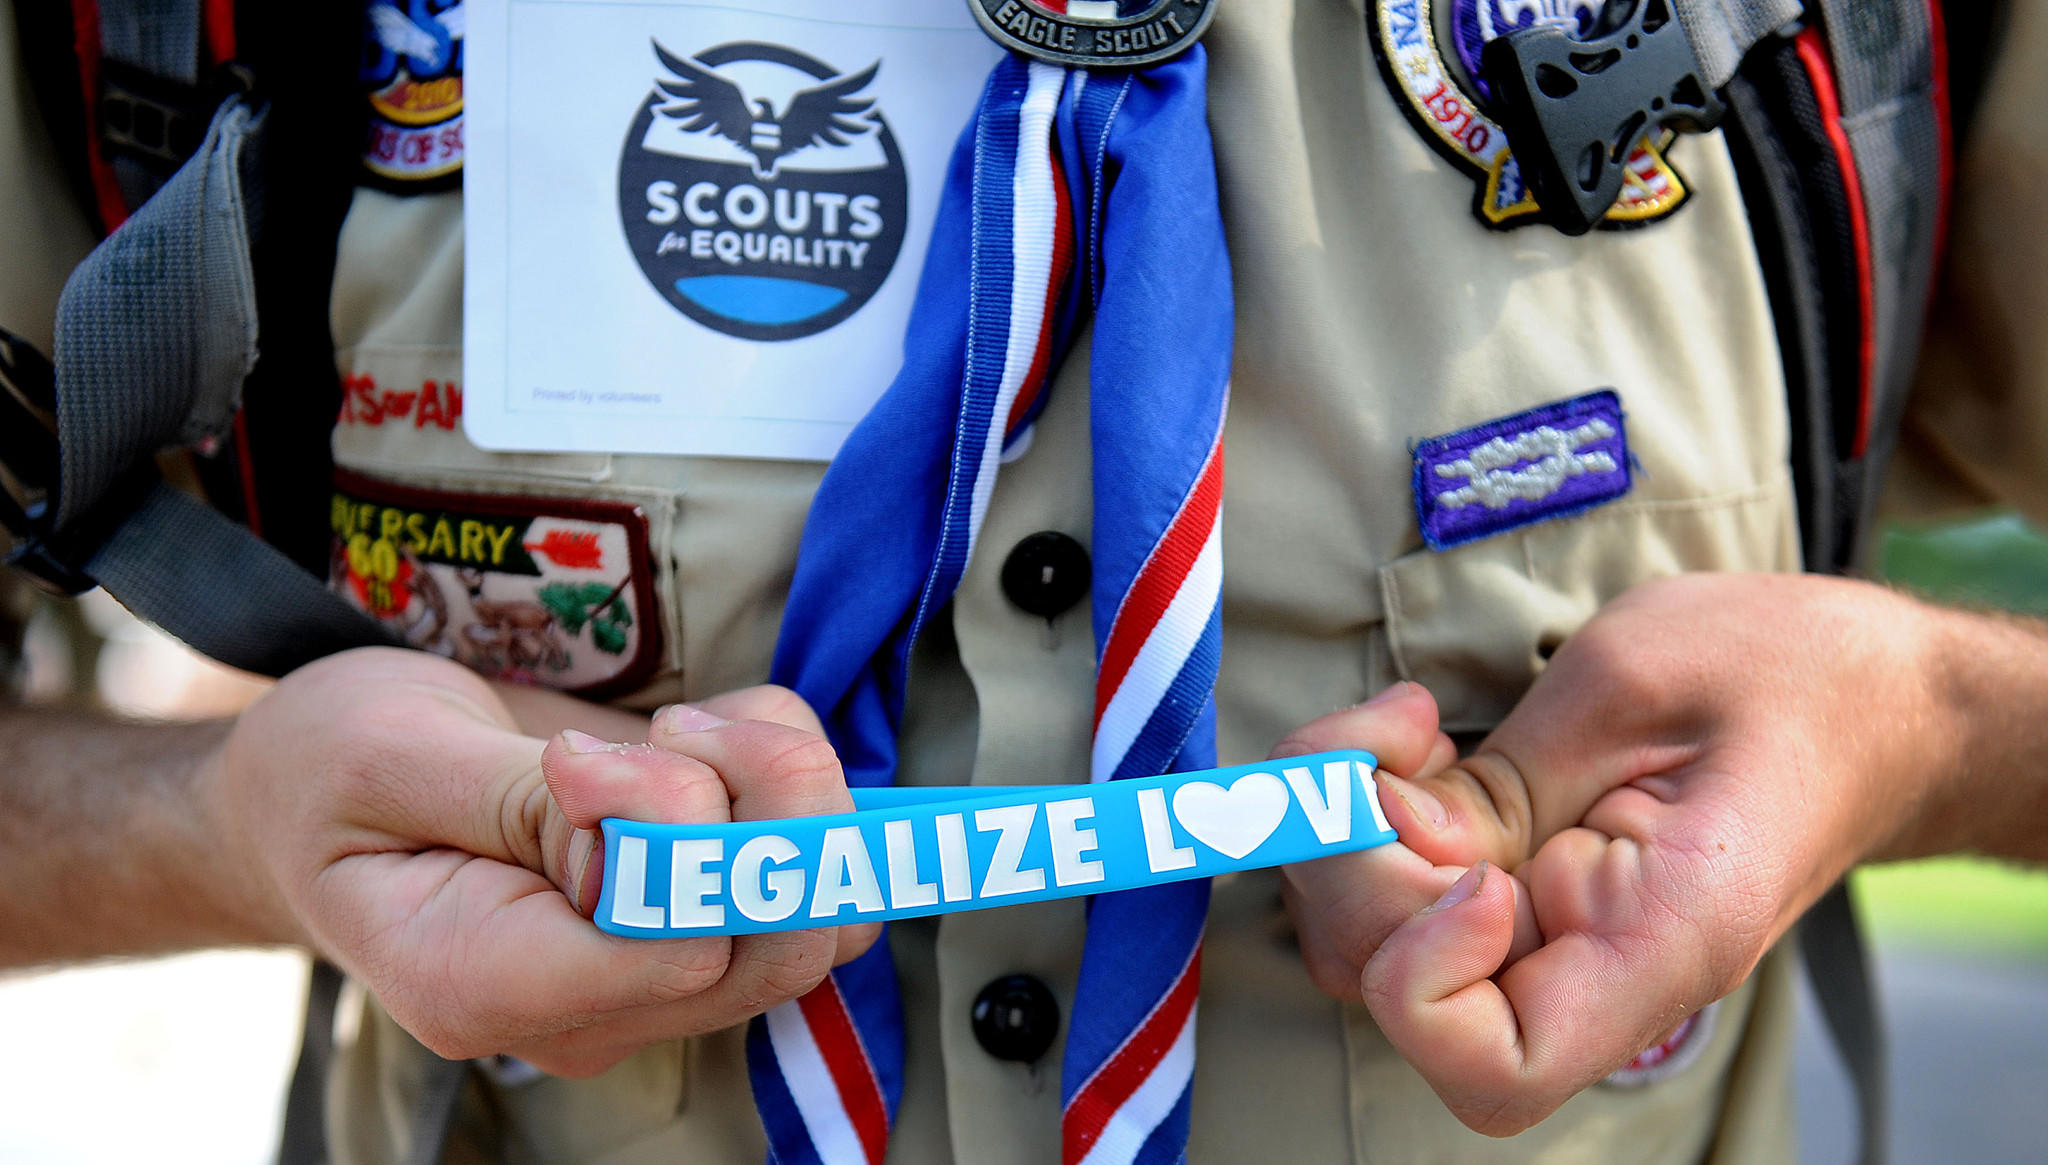 Scouts for Equality holds a rally to call for equality and inclusion for gays in the Boy Scouts of America at the Boy Scout Memorial in Washington, D.C., on May 22 2013.